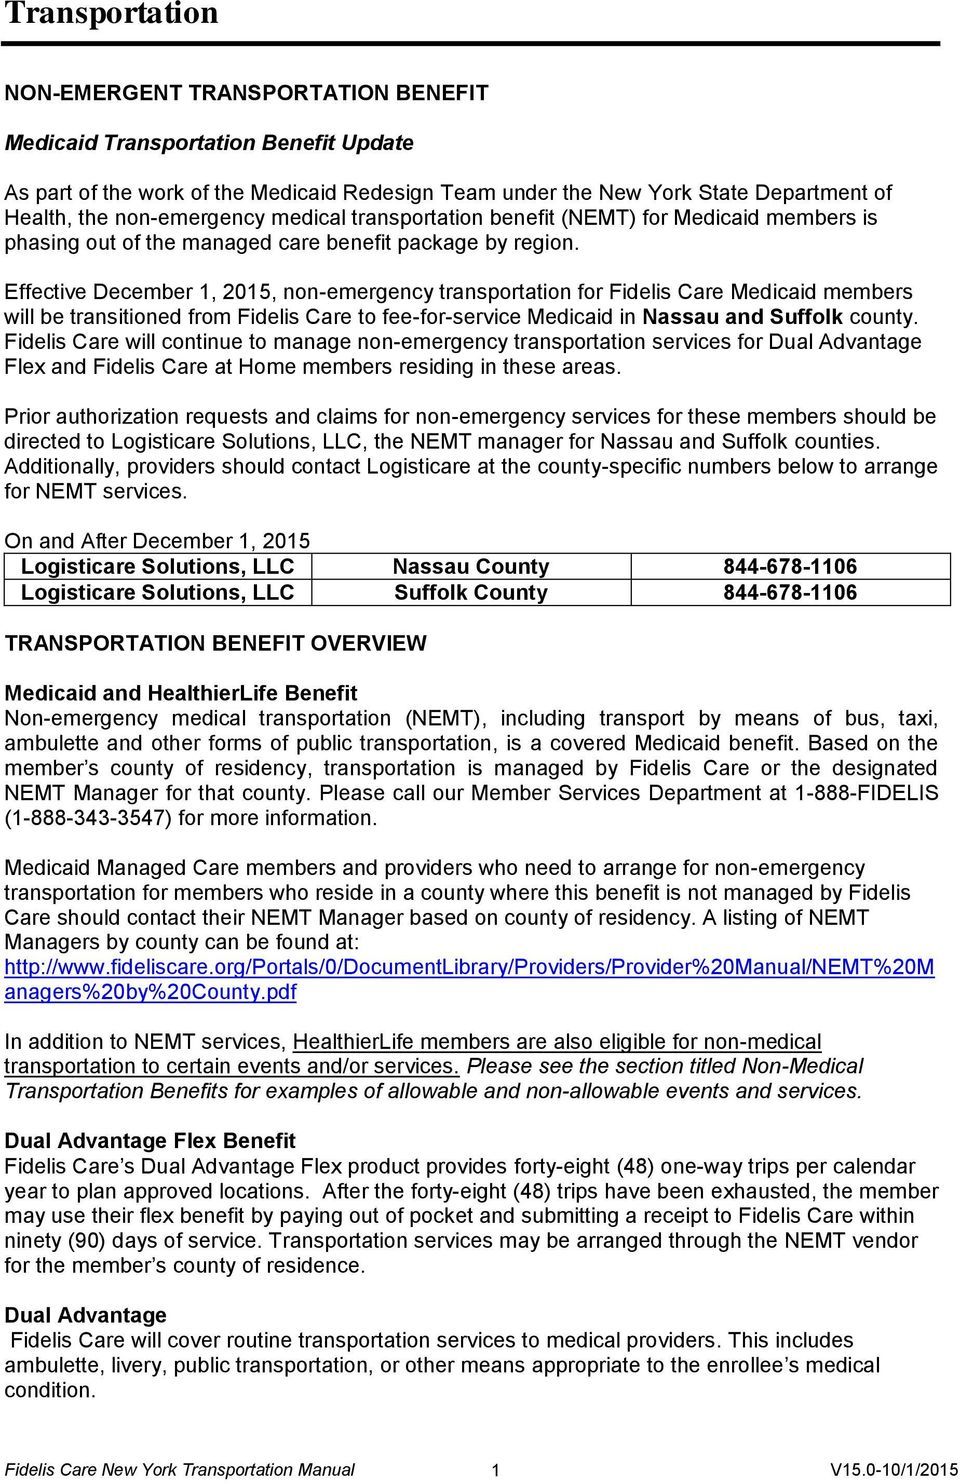 Effective December 1, 2015, non-emergency transportation for Fidelis Care Medicaid members will be transitioned from Fidelis Care to fee-for-service Medicaid in Nassau and Suffolk county.